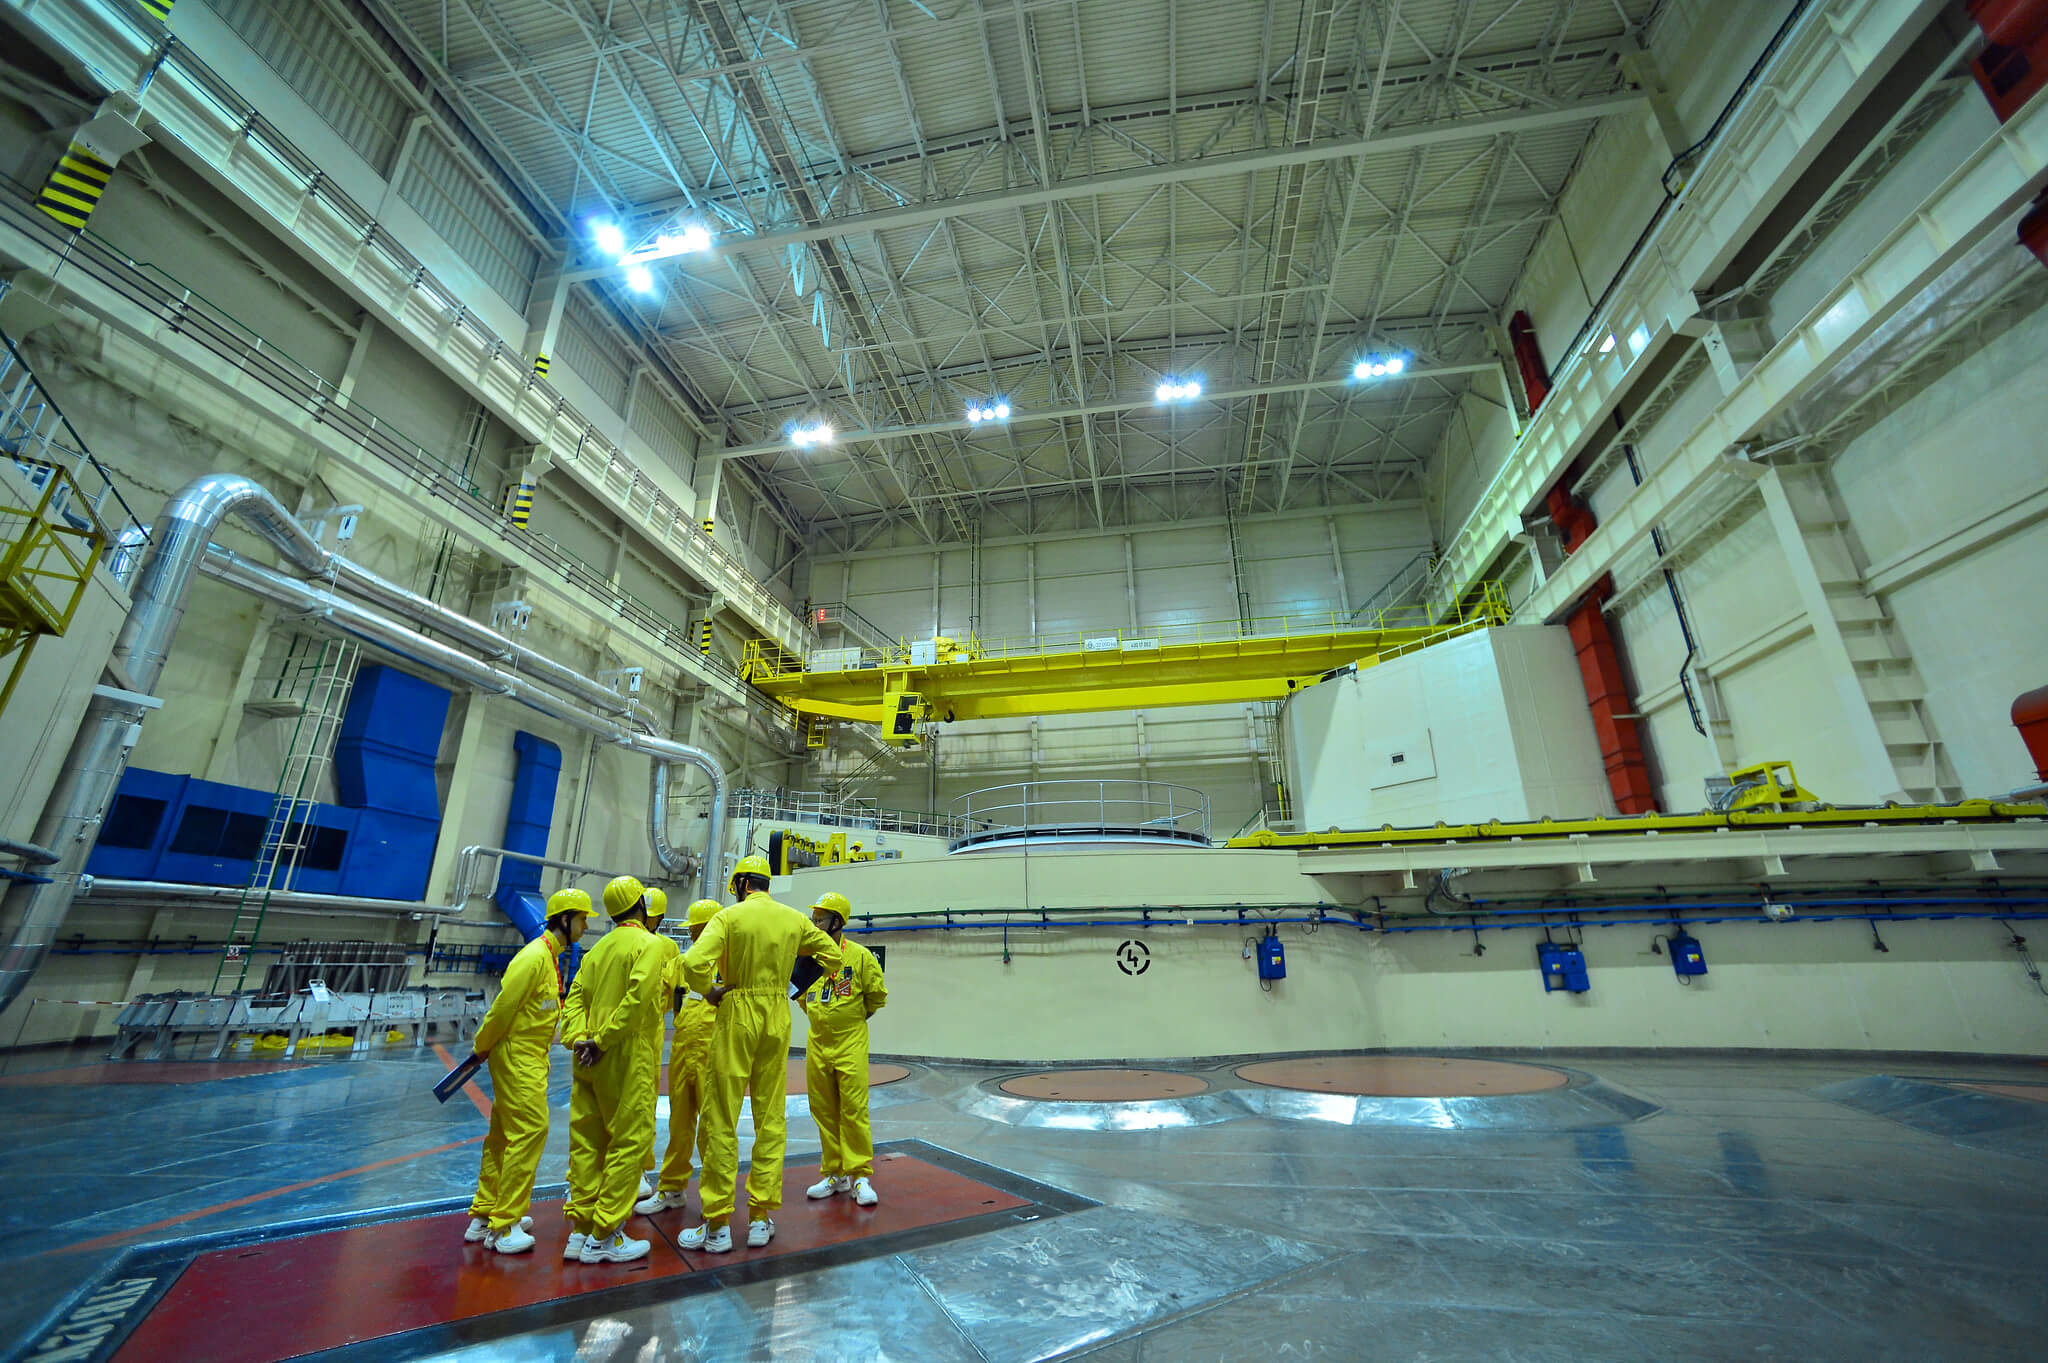 Training exercise at the Dukovany nuclear power plant the Czech Republic in 2015. © IAEA Imagebank